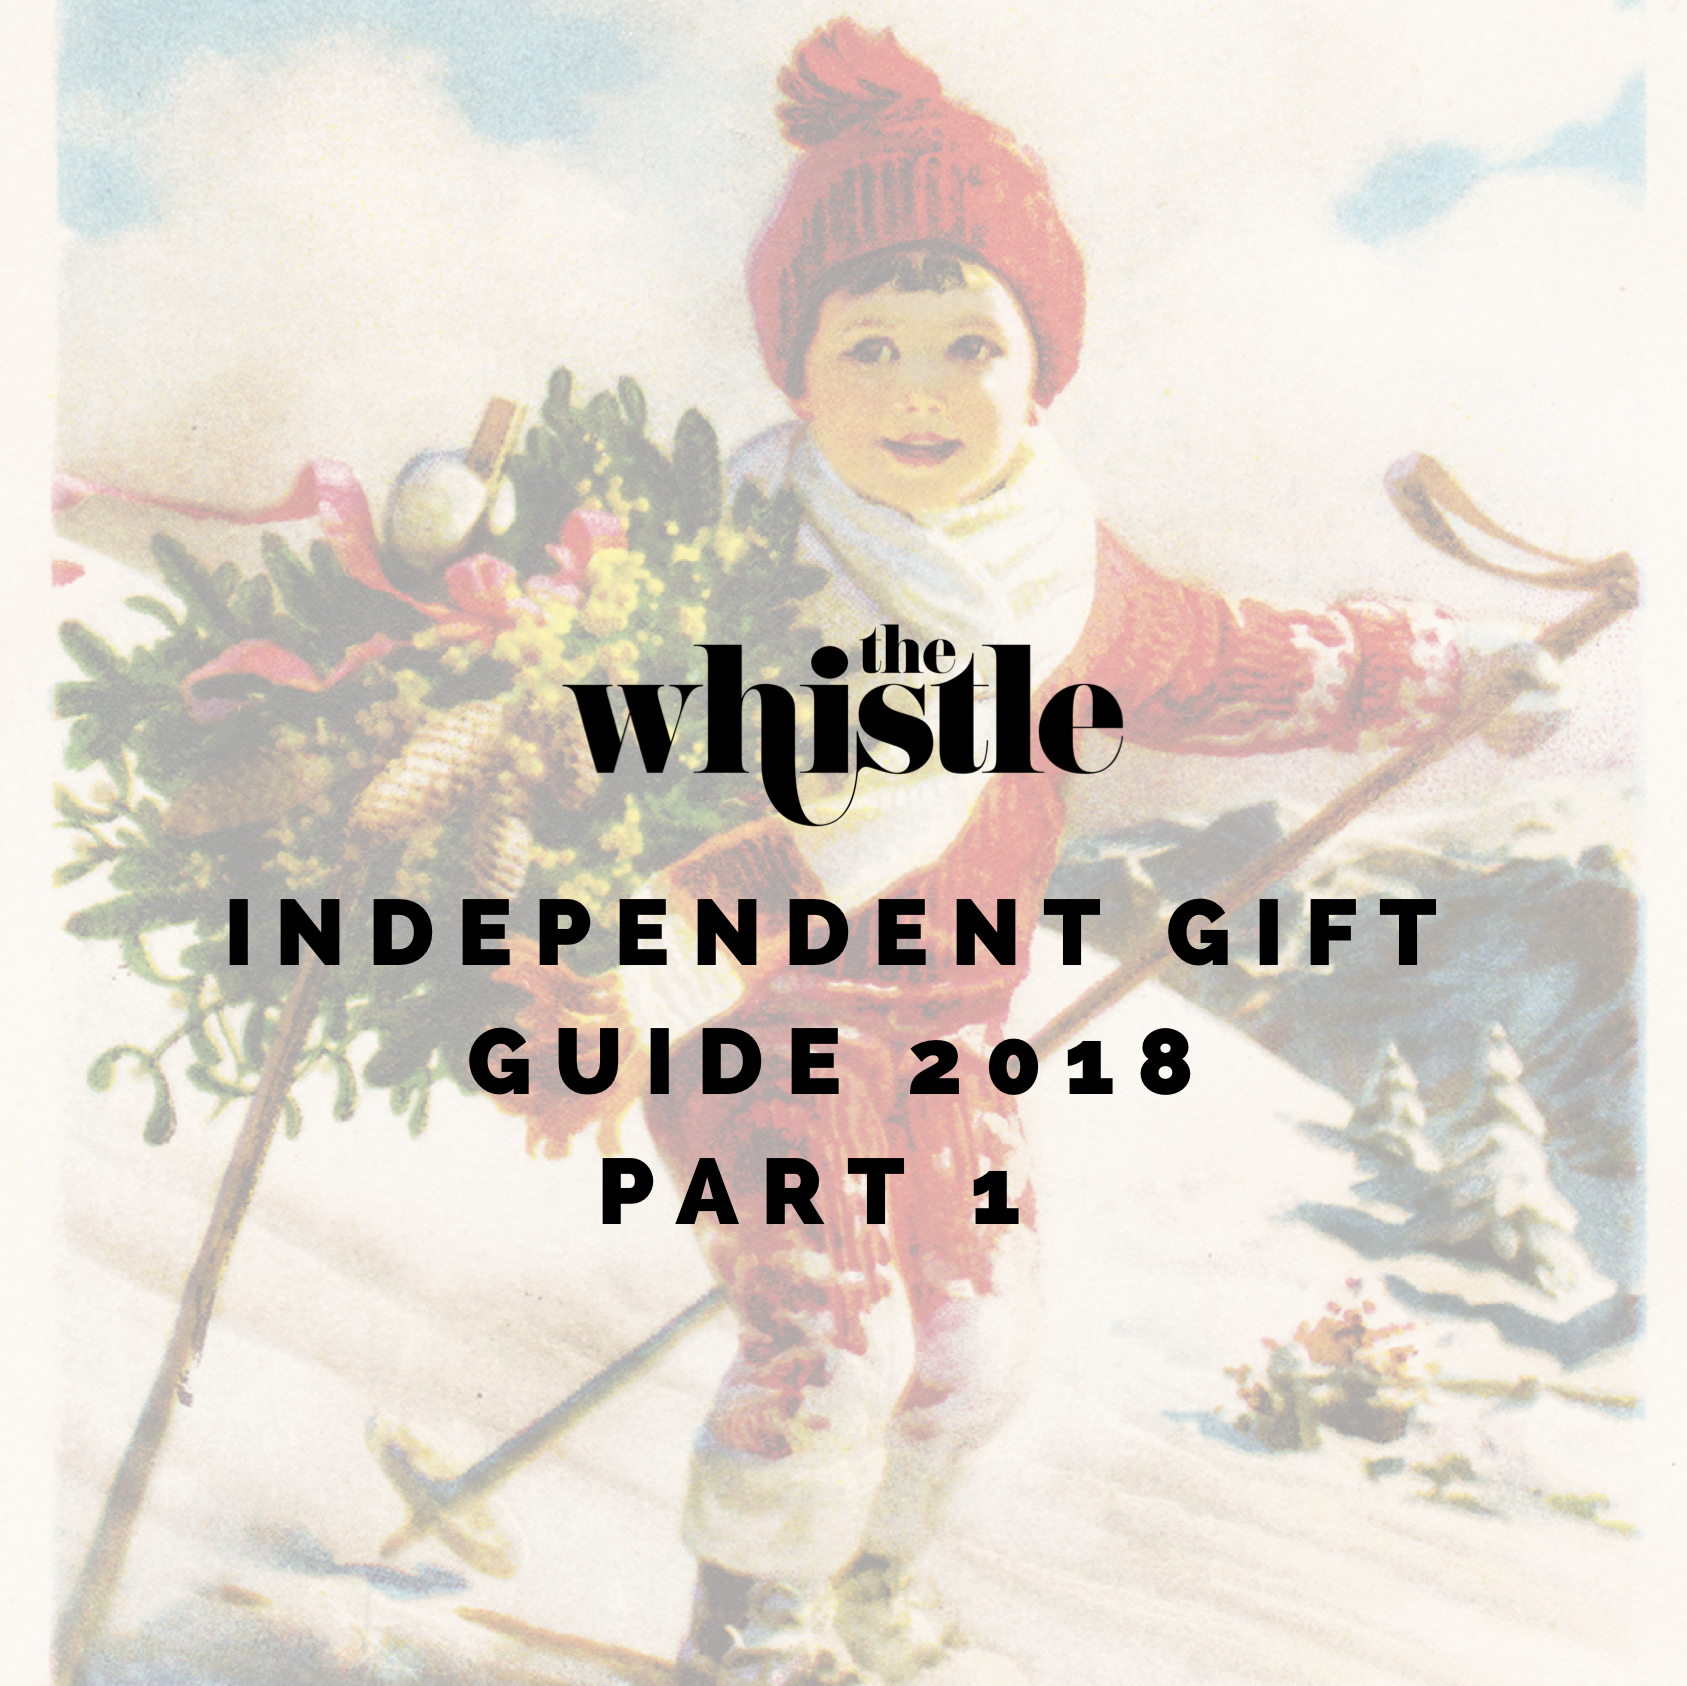 INDEPENDENT GIFT GUIDE 2018PART 1.jpg